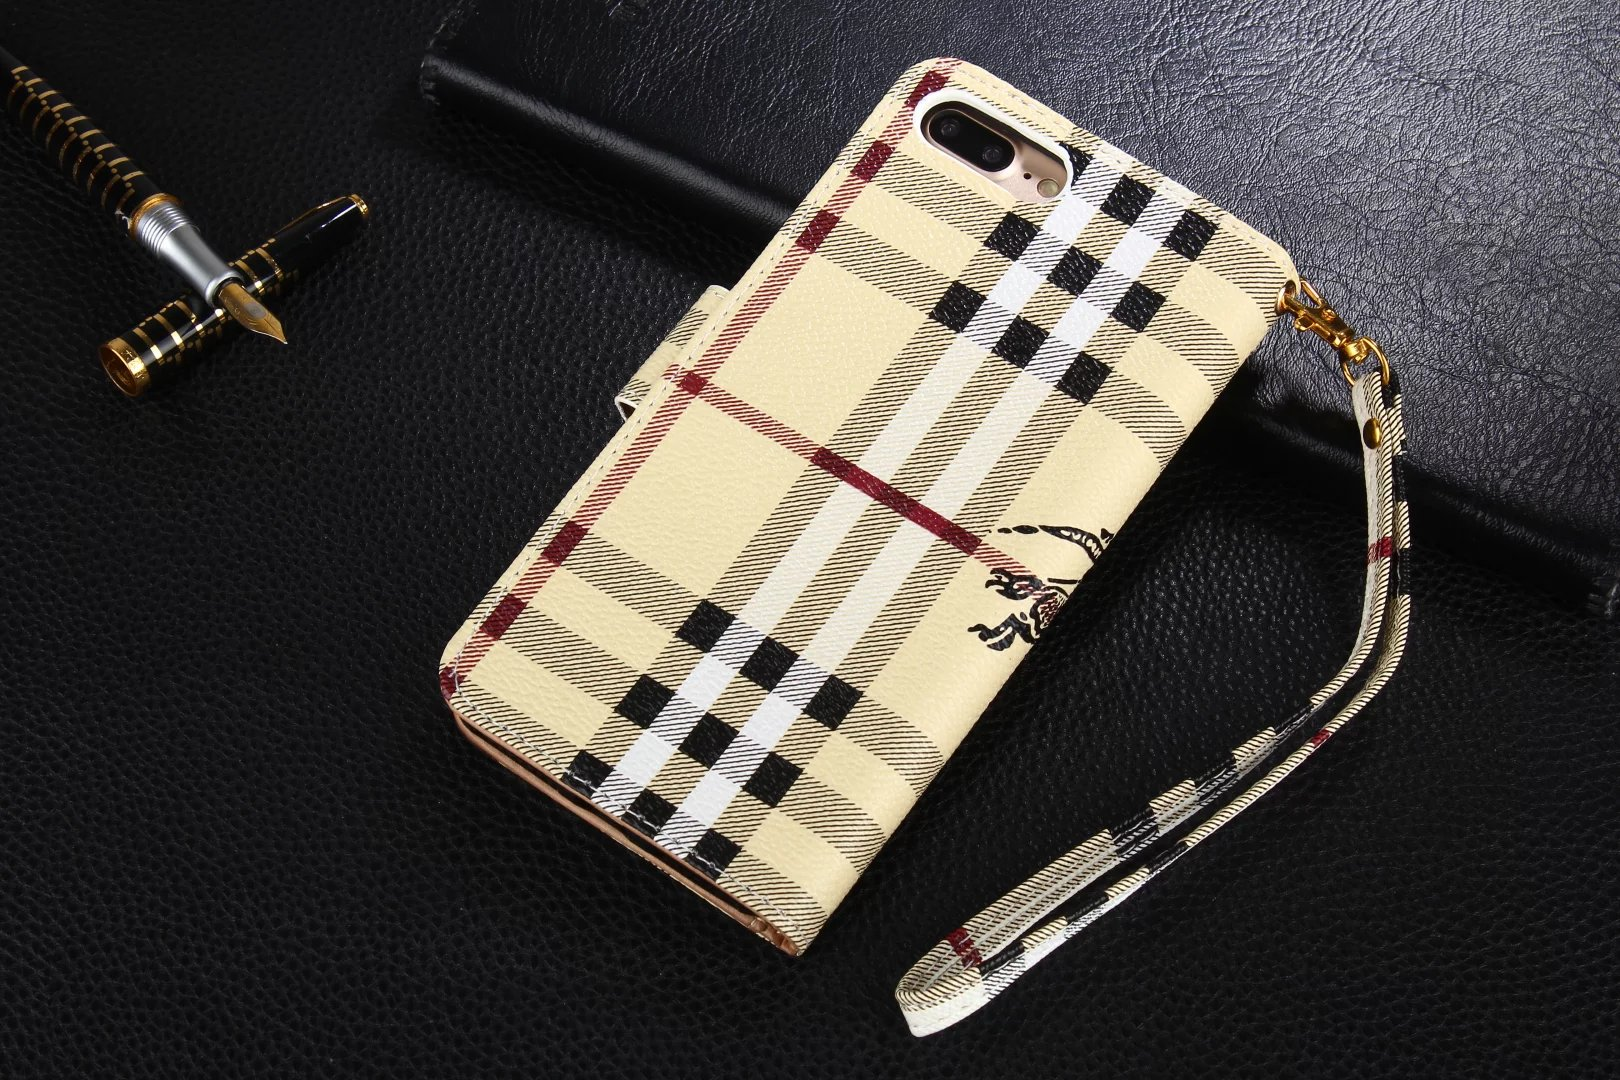 the best case for iphone 6s pretty phone cases for iphone 6s fashion iphone6s case custom laptop skins black iphone 6s case apple iphone 2016s iphone 6s 6s.6s custom case iphone 6s create cell phone case